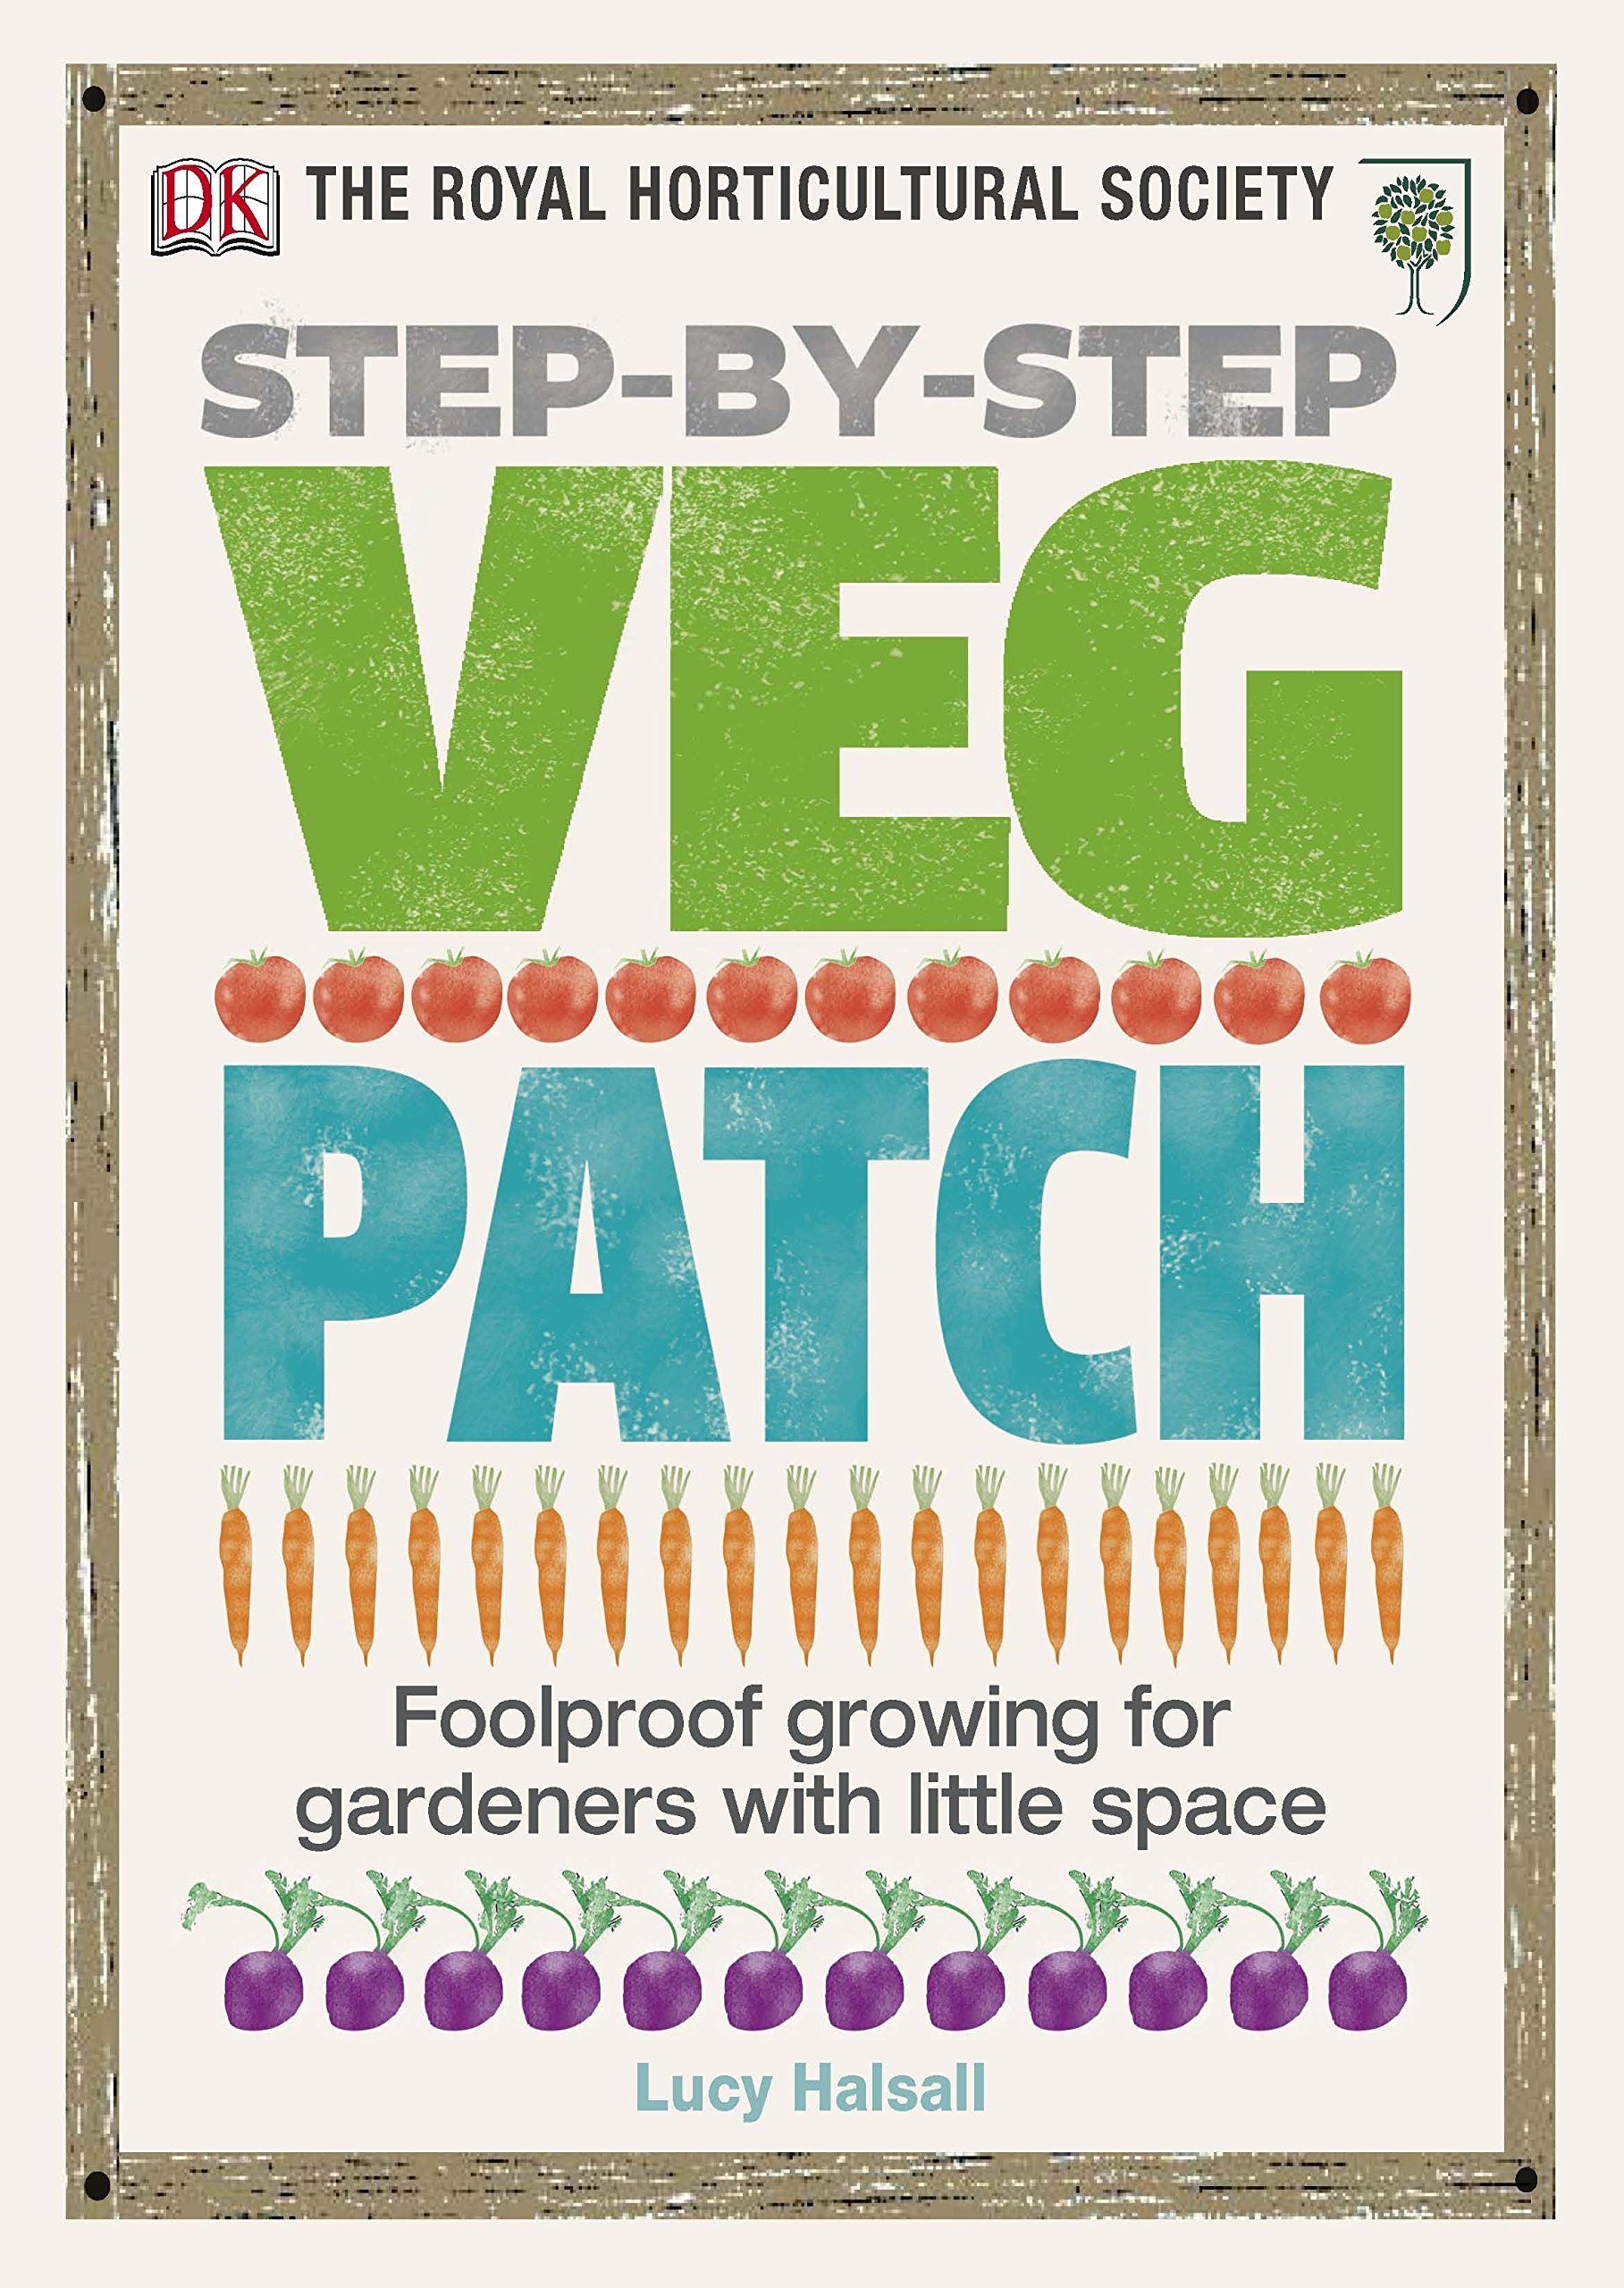 Create Kitchen Garden Planting Plans For Your Kitchen Garden How To Create A Vegetable